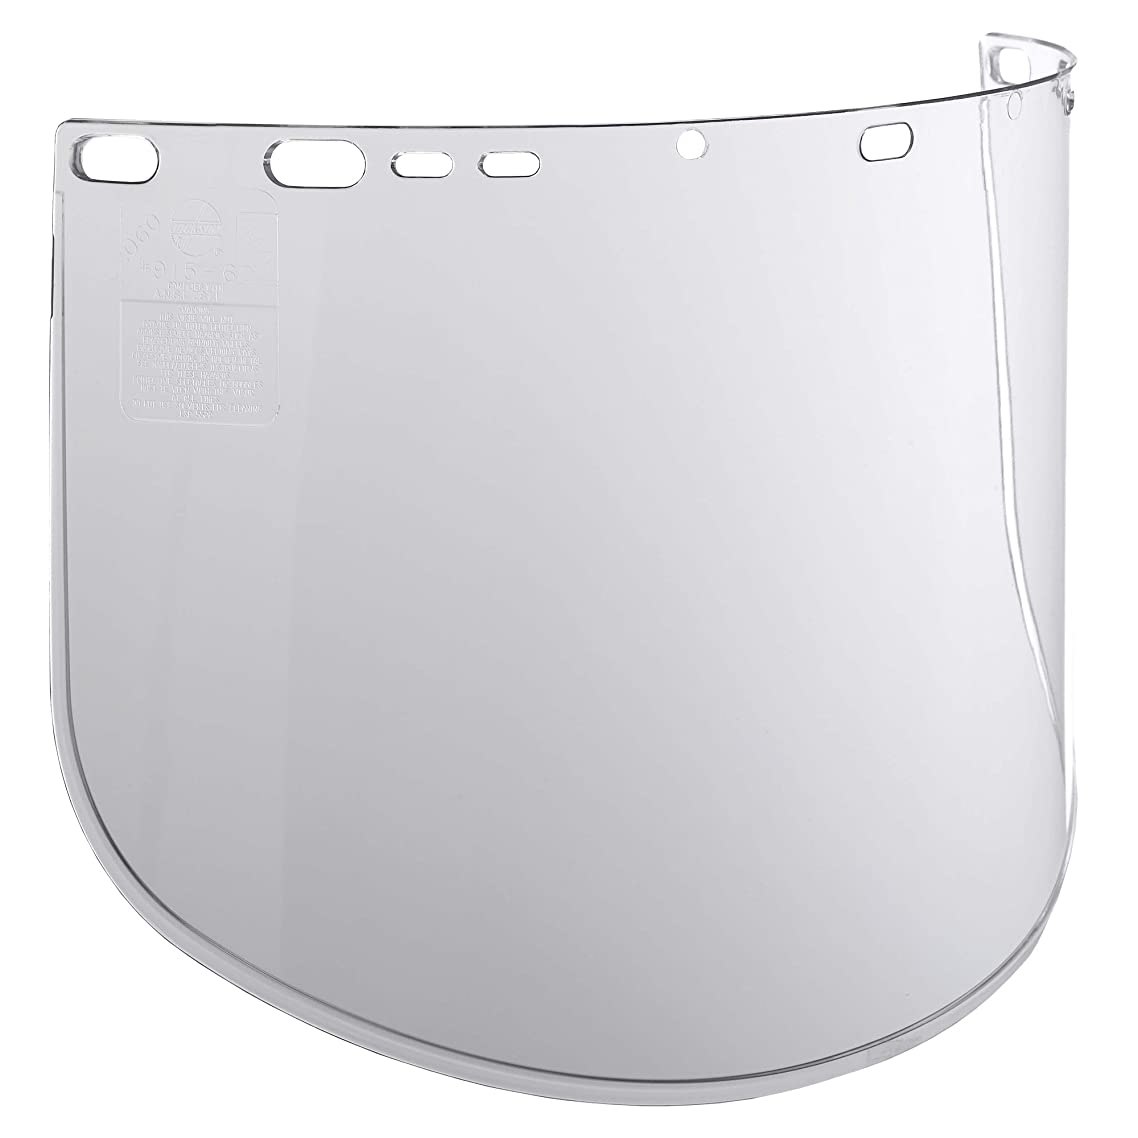 """Jackson Safety F40 Propionate Lightweight Face Shield (29084), 9"""" x 15.5"""" x 0.06"""", Clear, Face Protection, Unbound, 12 Shields / Case"""